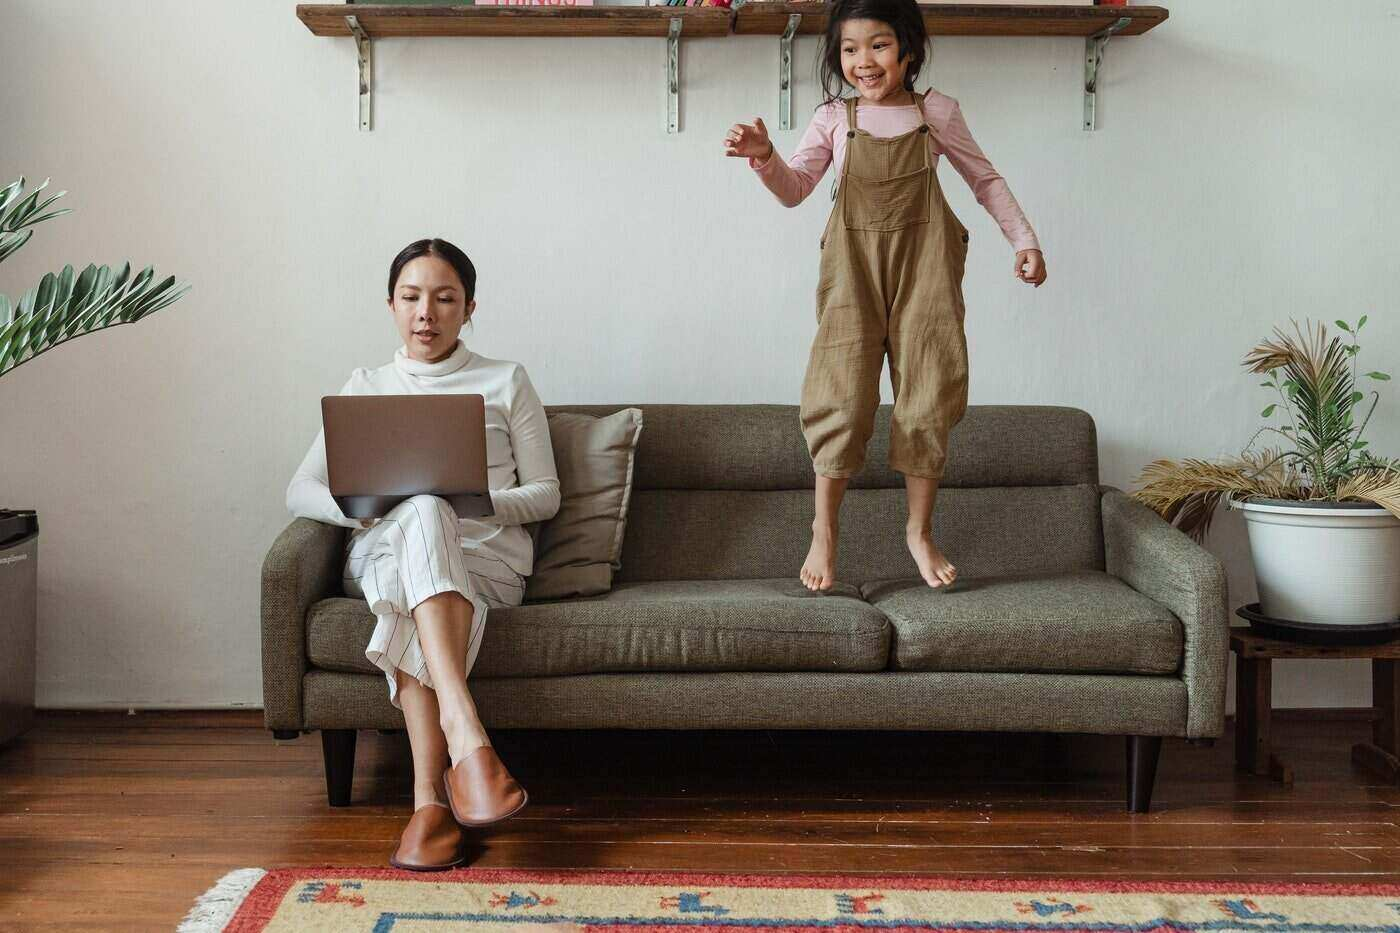 mother working on couch while daughter jumps - mom as a paid labourer